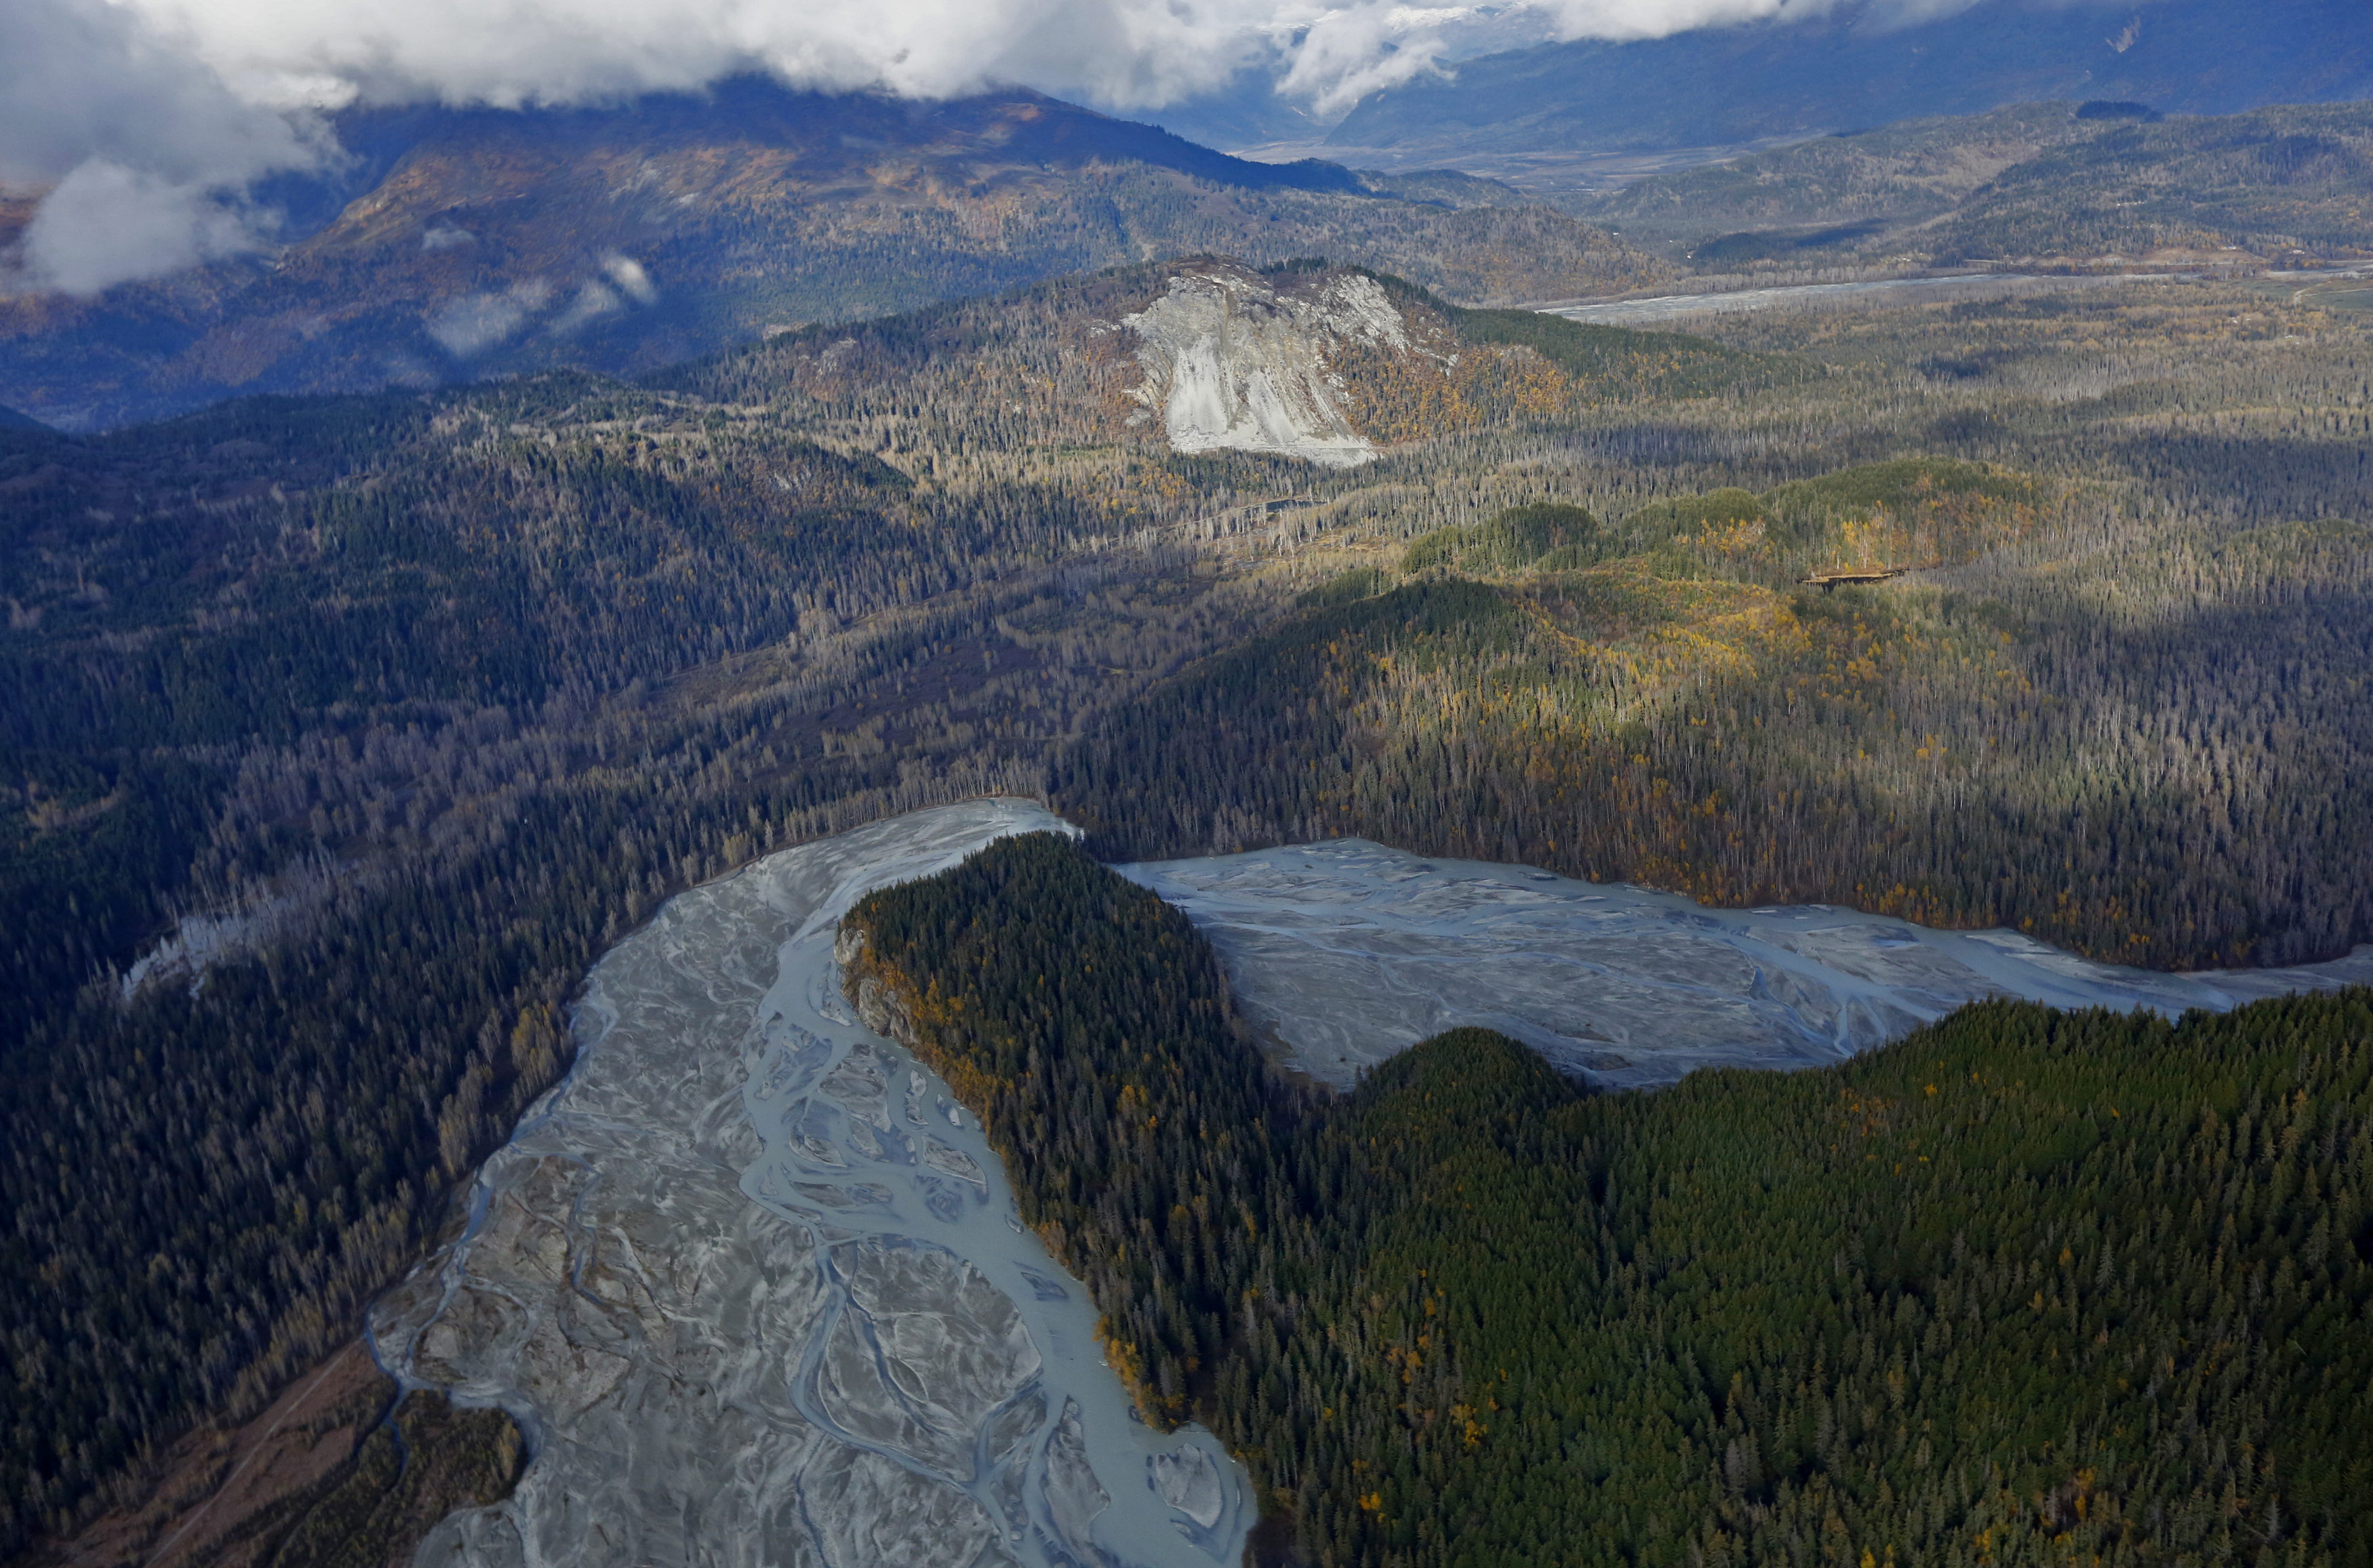 The Tsirku River winds through forest as seen in an aerial view near Haines, in southwestern Alaska, U.S. on October 7, 2014. REUTERS/Bob Strong